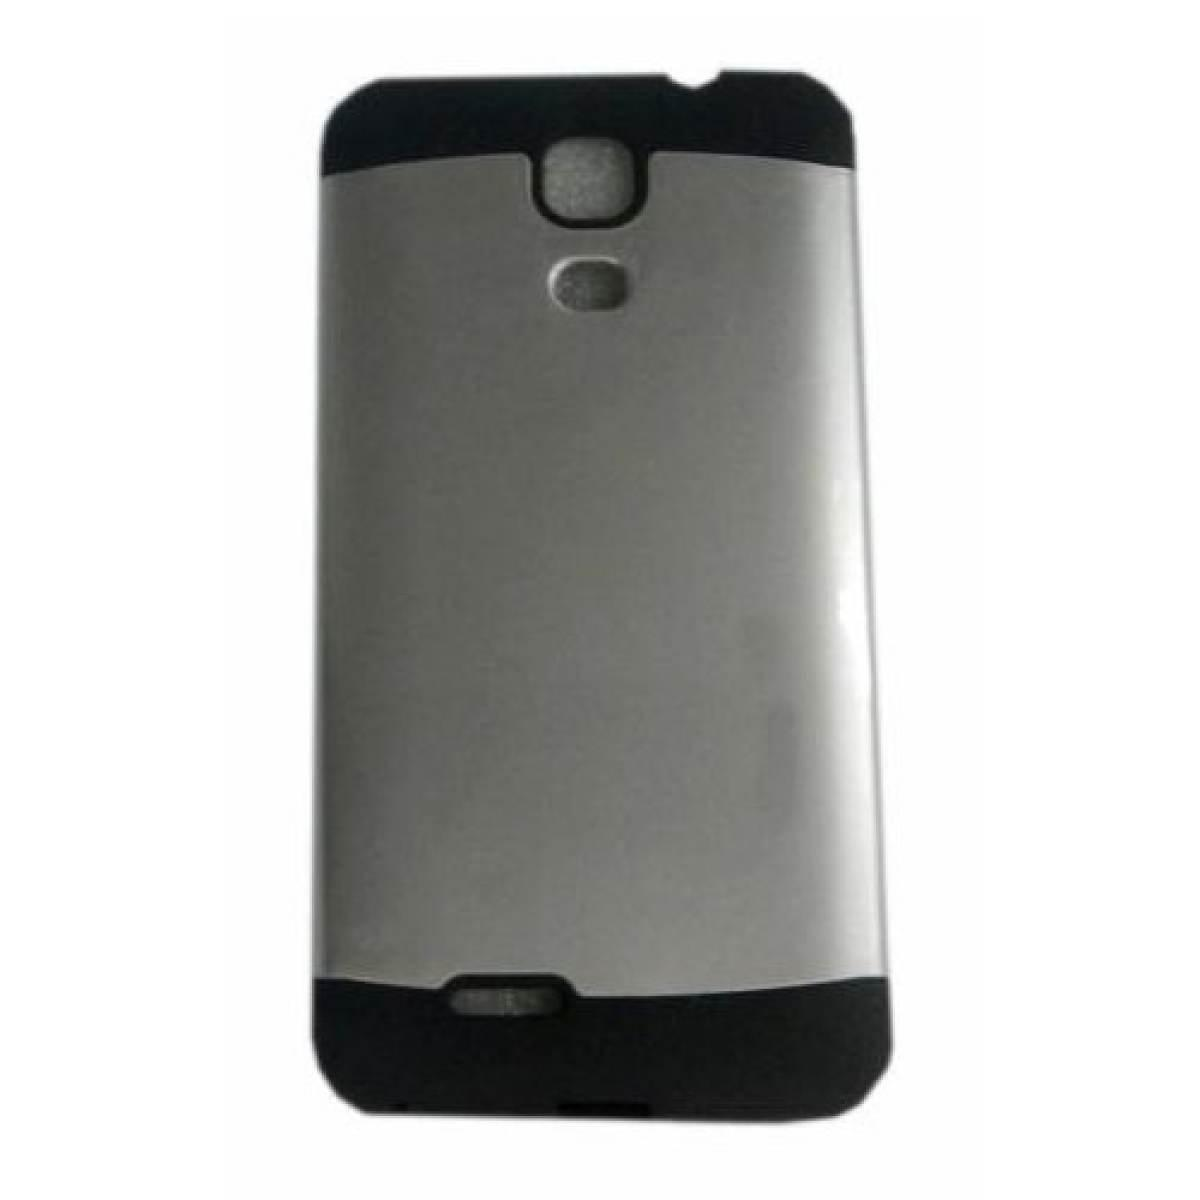 Slim Two Tone Hard TPU Case for Cherry Mobile Flare S4 (silver)